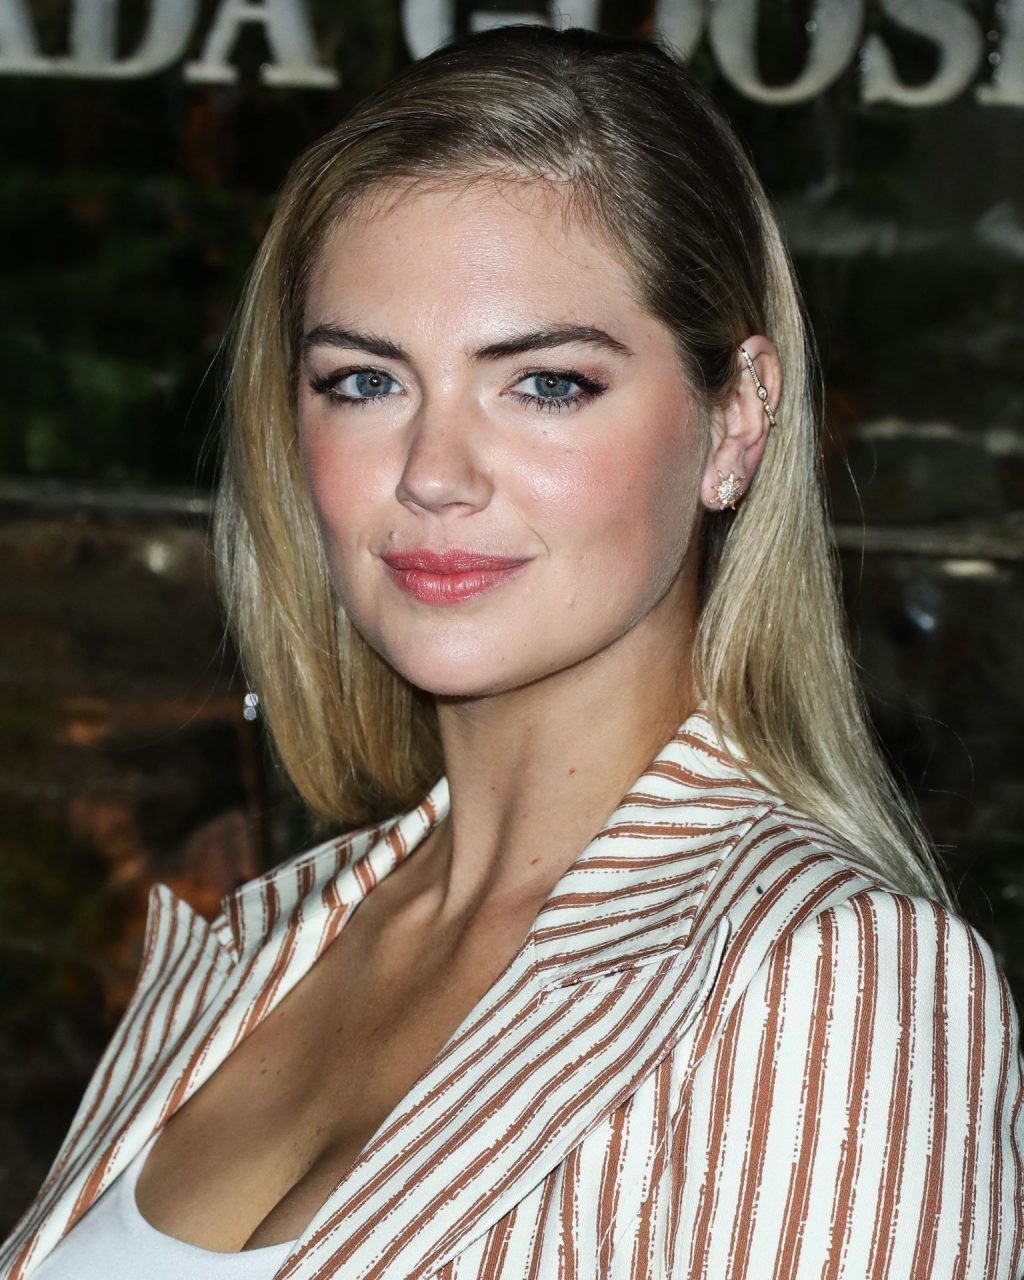 Kate Upton Sexy The Fappening Blog 72 1024x1280 - Kate Upton Attends Canada Goose And Vogue Cocktails & Conversations (104 Photos)